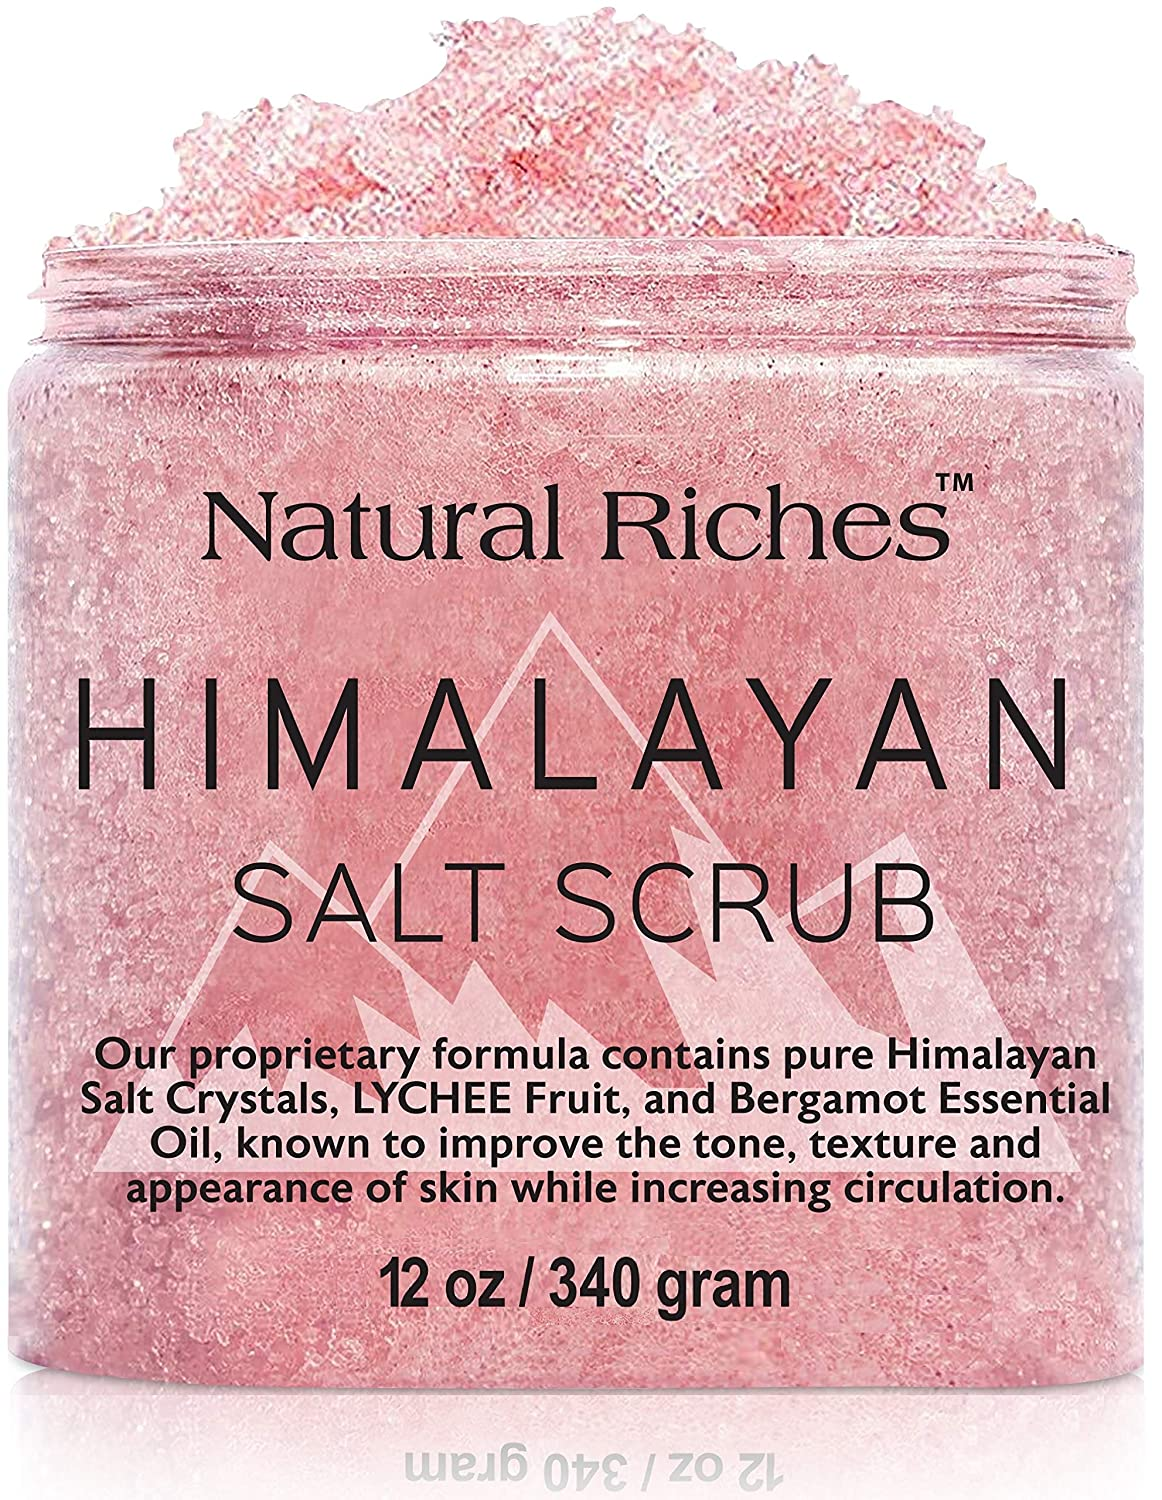 This beauty scrub is going to be another addition to your loved one's beauty regimen. It will make her body feel soft and smooth. Apart from exfoliating, this body scrub is going to make her smell good all day long.